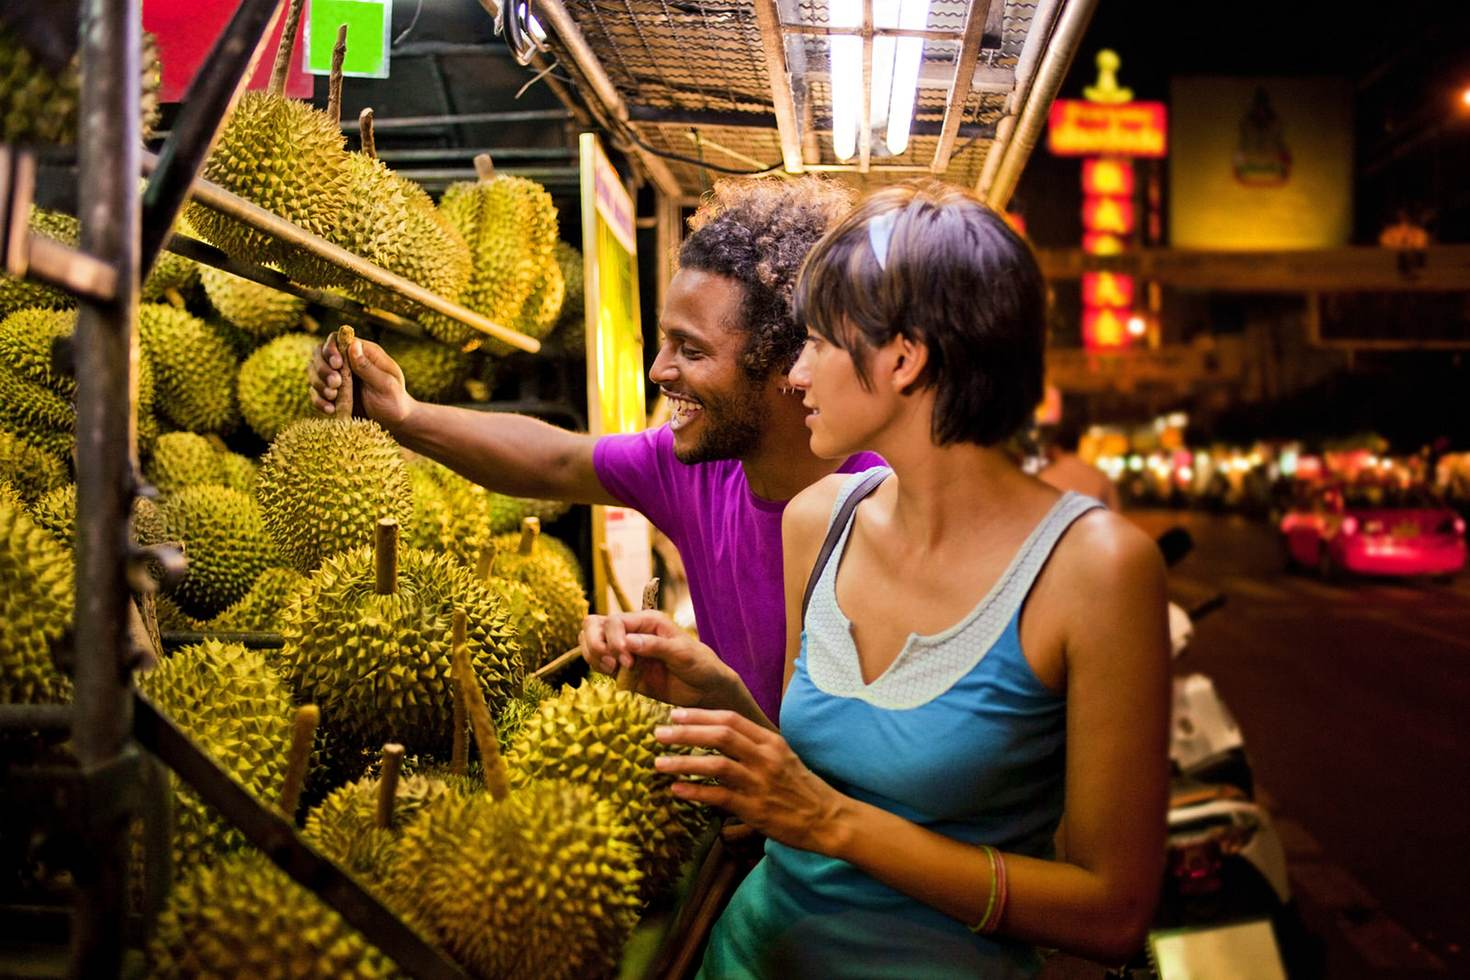 Durian: how bad can it be? Try it to find out! © Jim Purdum / Getty Images